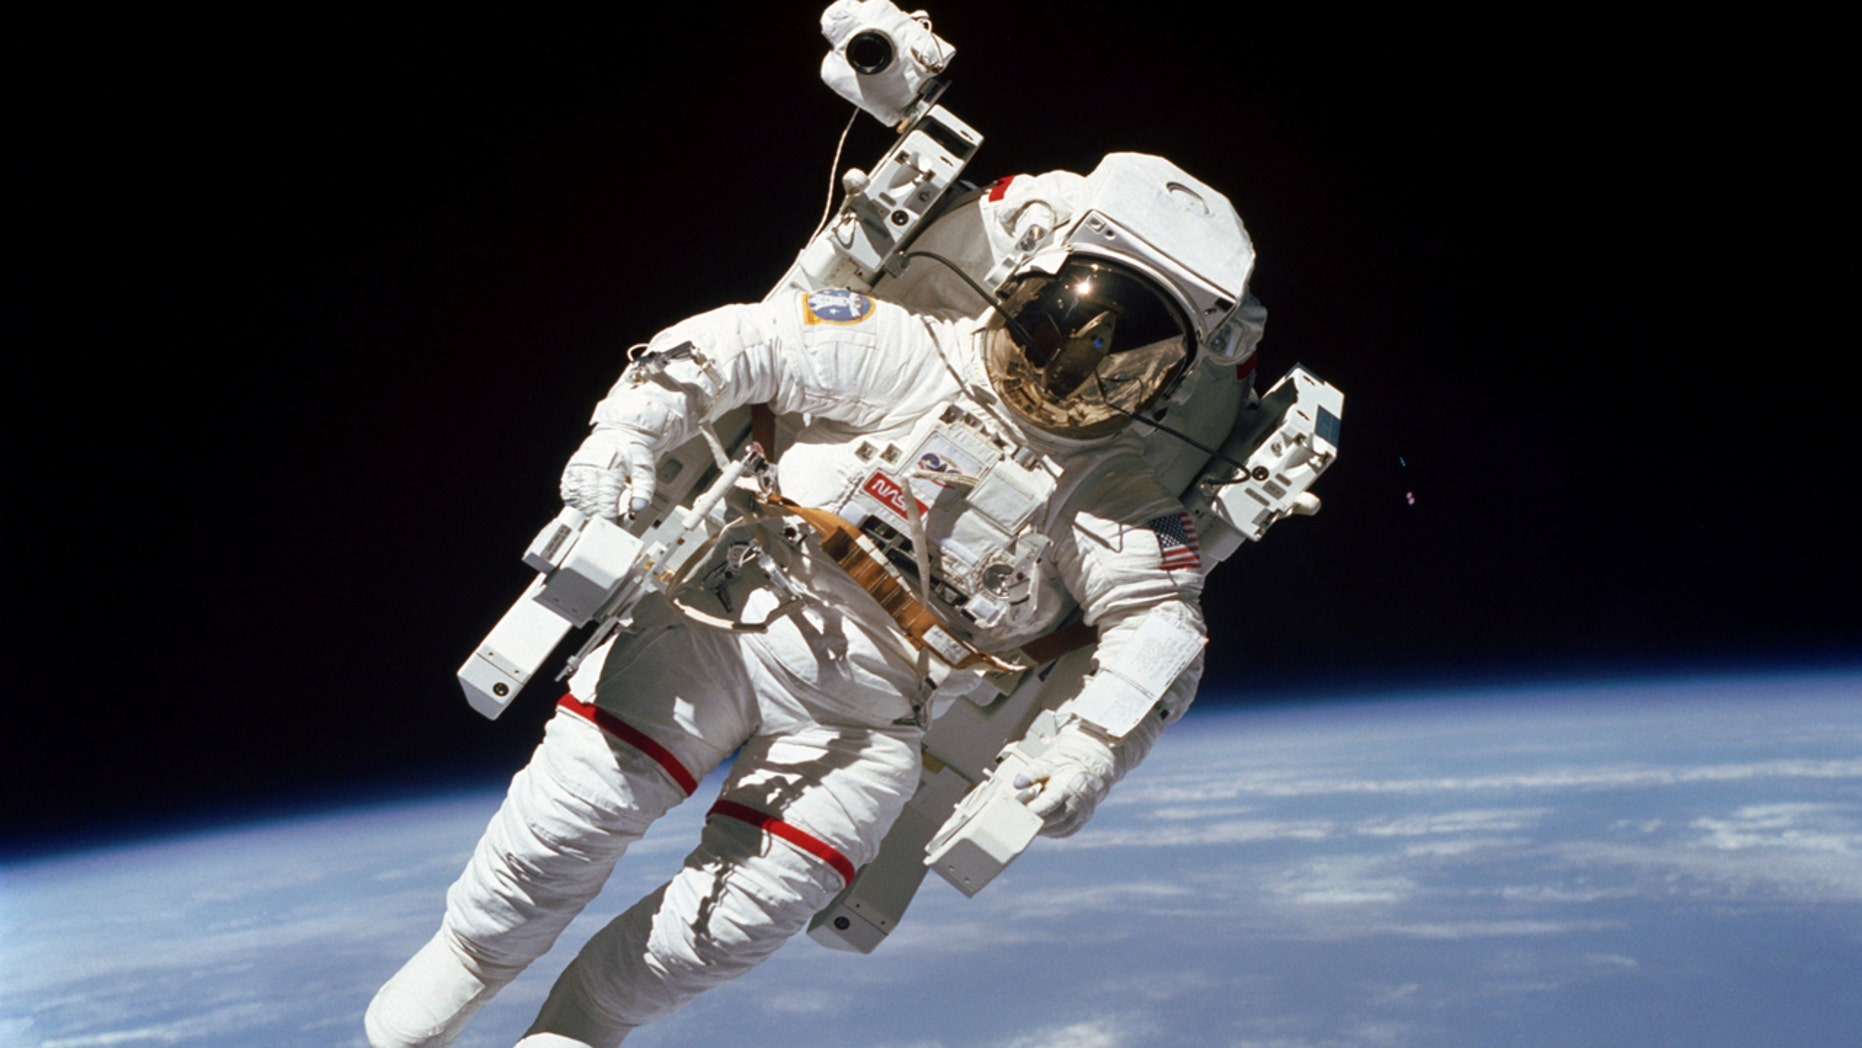 File Feb. 7, 1984: Astronaut Bruce McCandless participates in a spacewalk a few meters away from the cabin of the Earth-orbiting space shuttle Challenger, using a nitrogen-propelled Manned Maneuvering Unit.